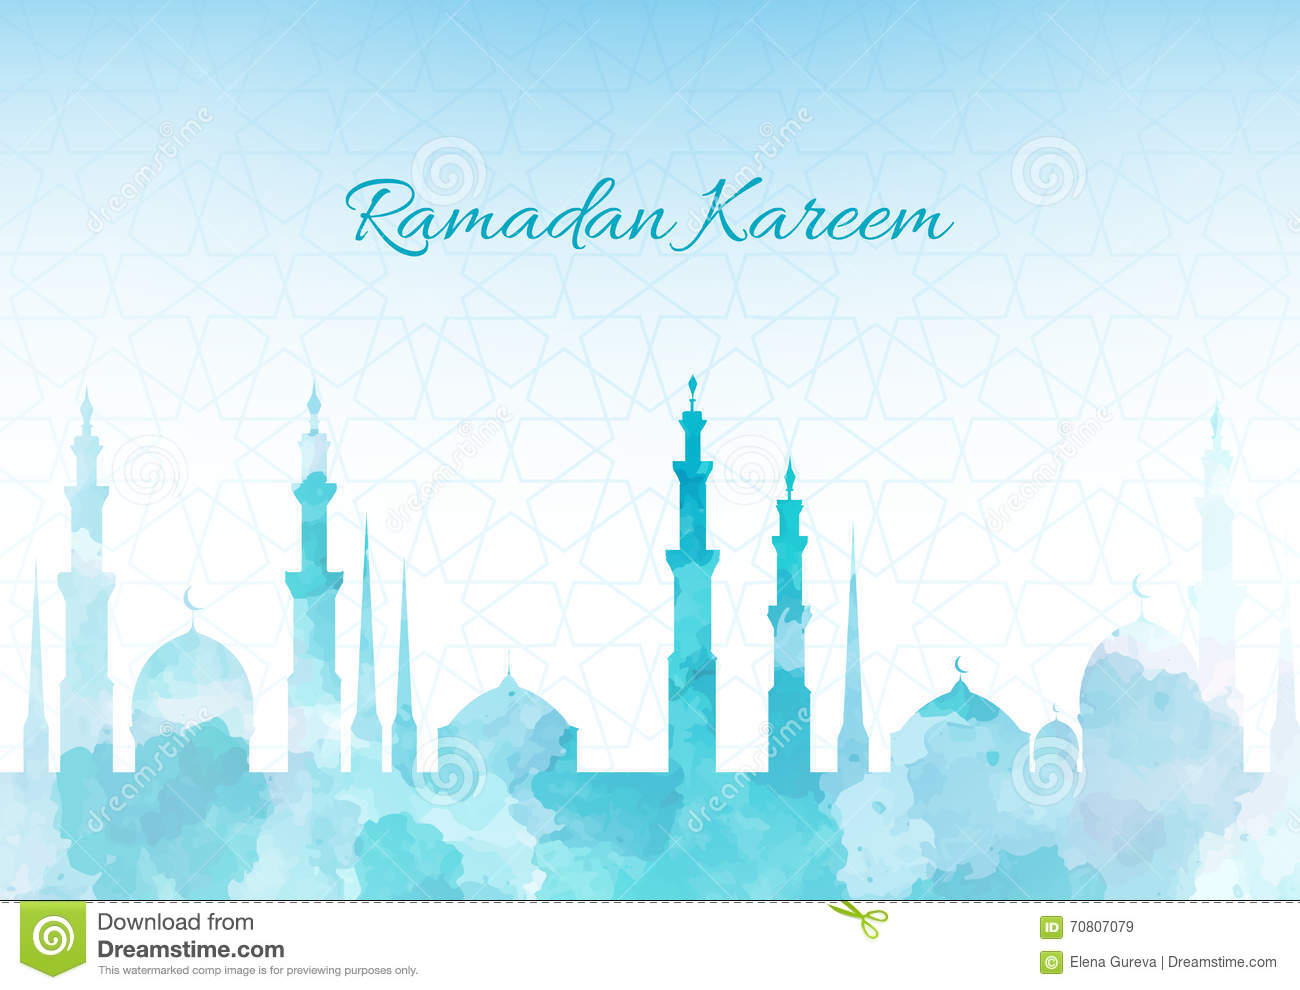 Mosque background for ramadan kareem stock photography image - Ramadan Kareem Greeting Background Mosque Watercolor Illustration With Arabic Town Royalty Free Stock Images